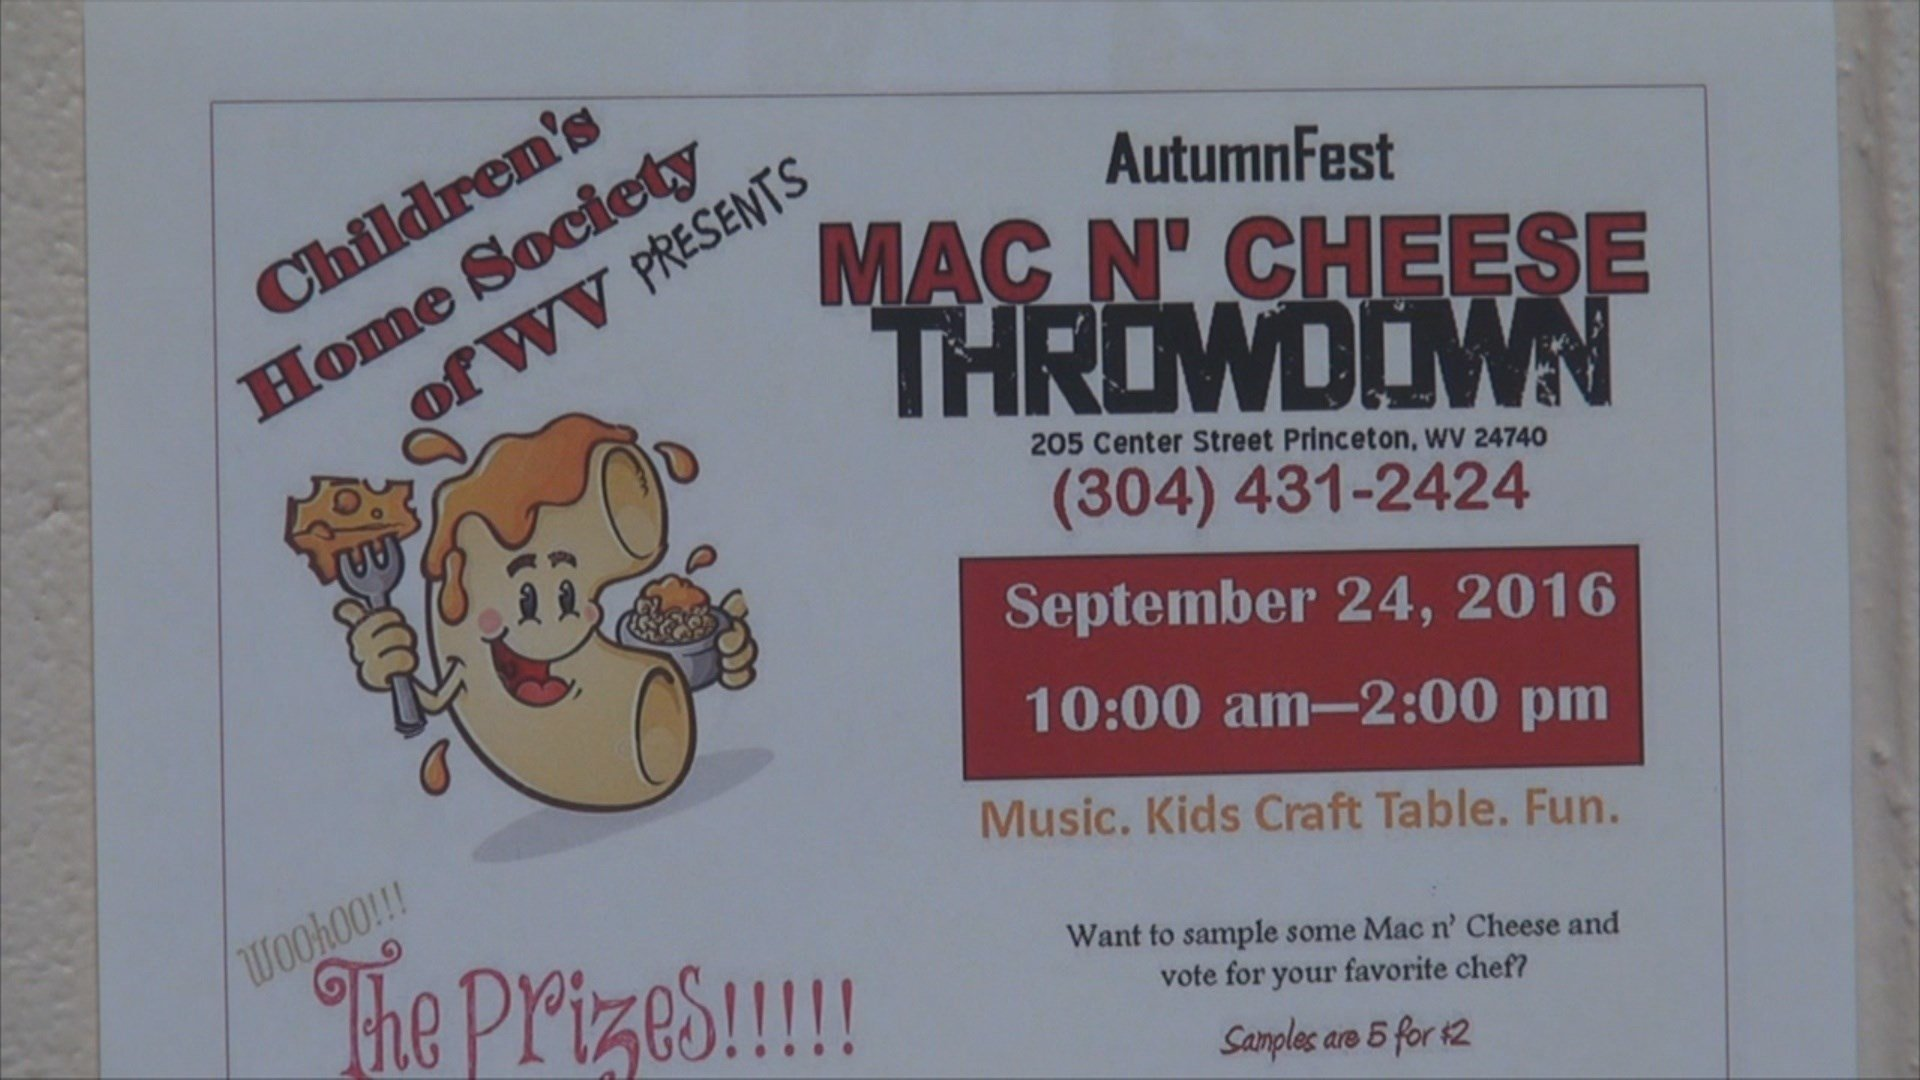 Wv colored childrens home - Participants Are Needed For A Mac N Cheese Throwdown This Weekend In Princeton The Event Is Being Put On By The Children S Home Society Of West Virginia